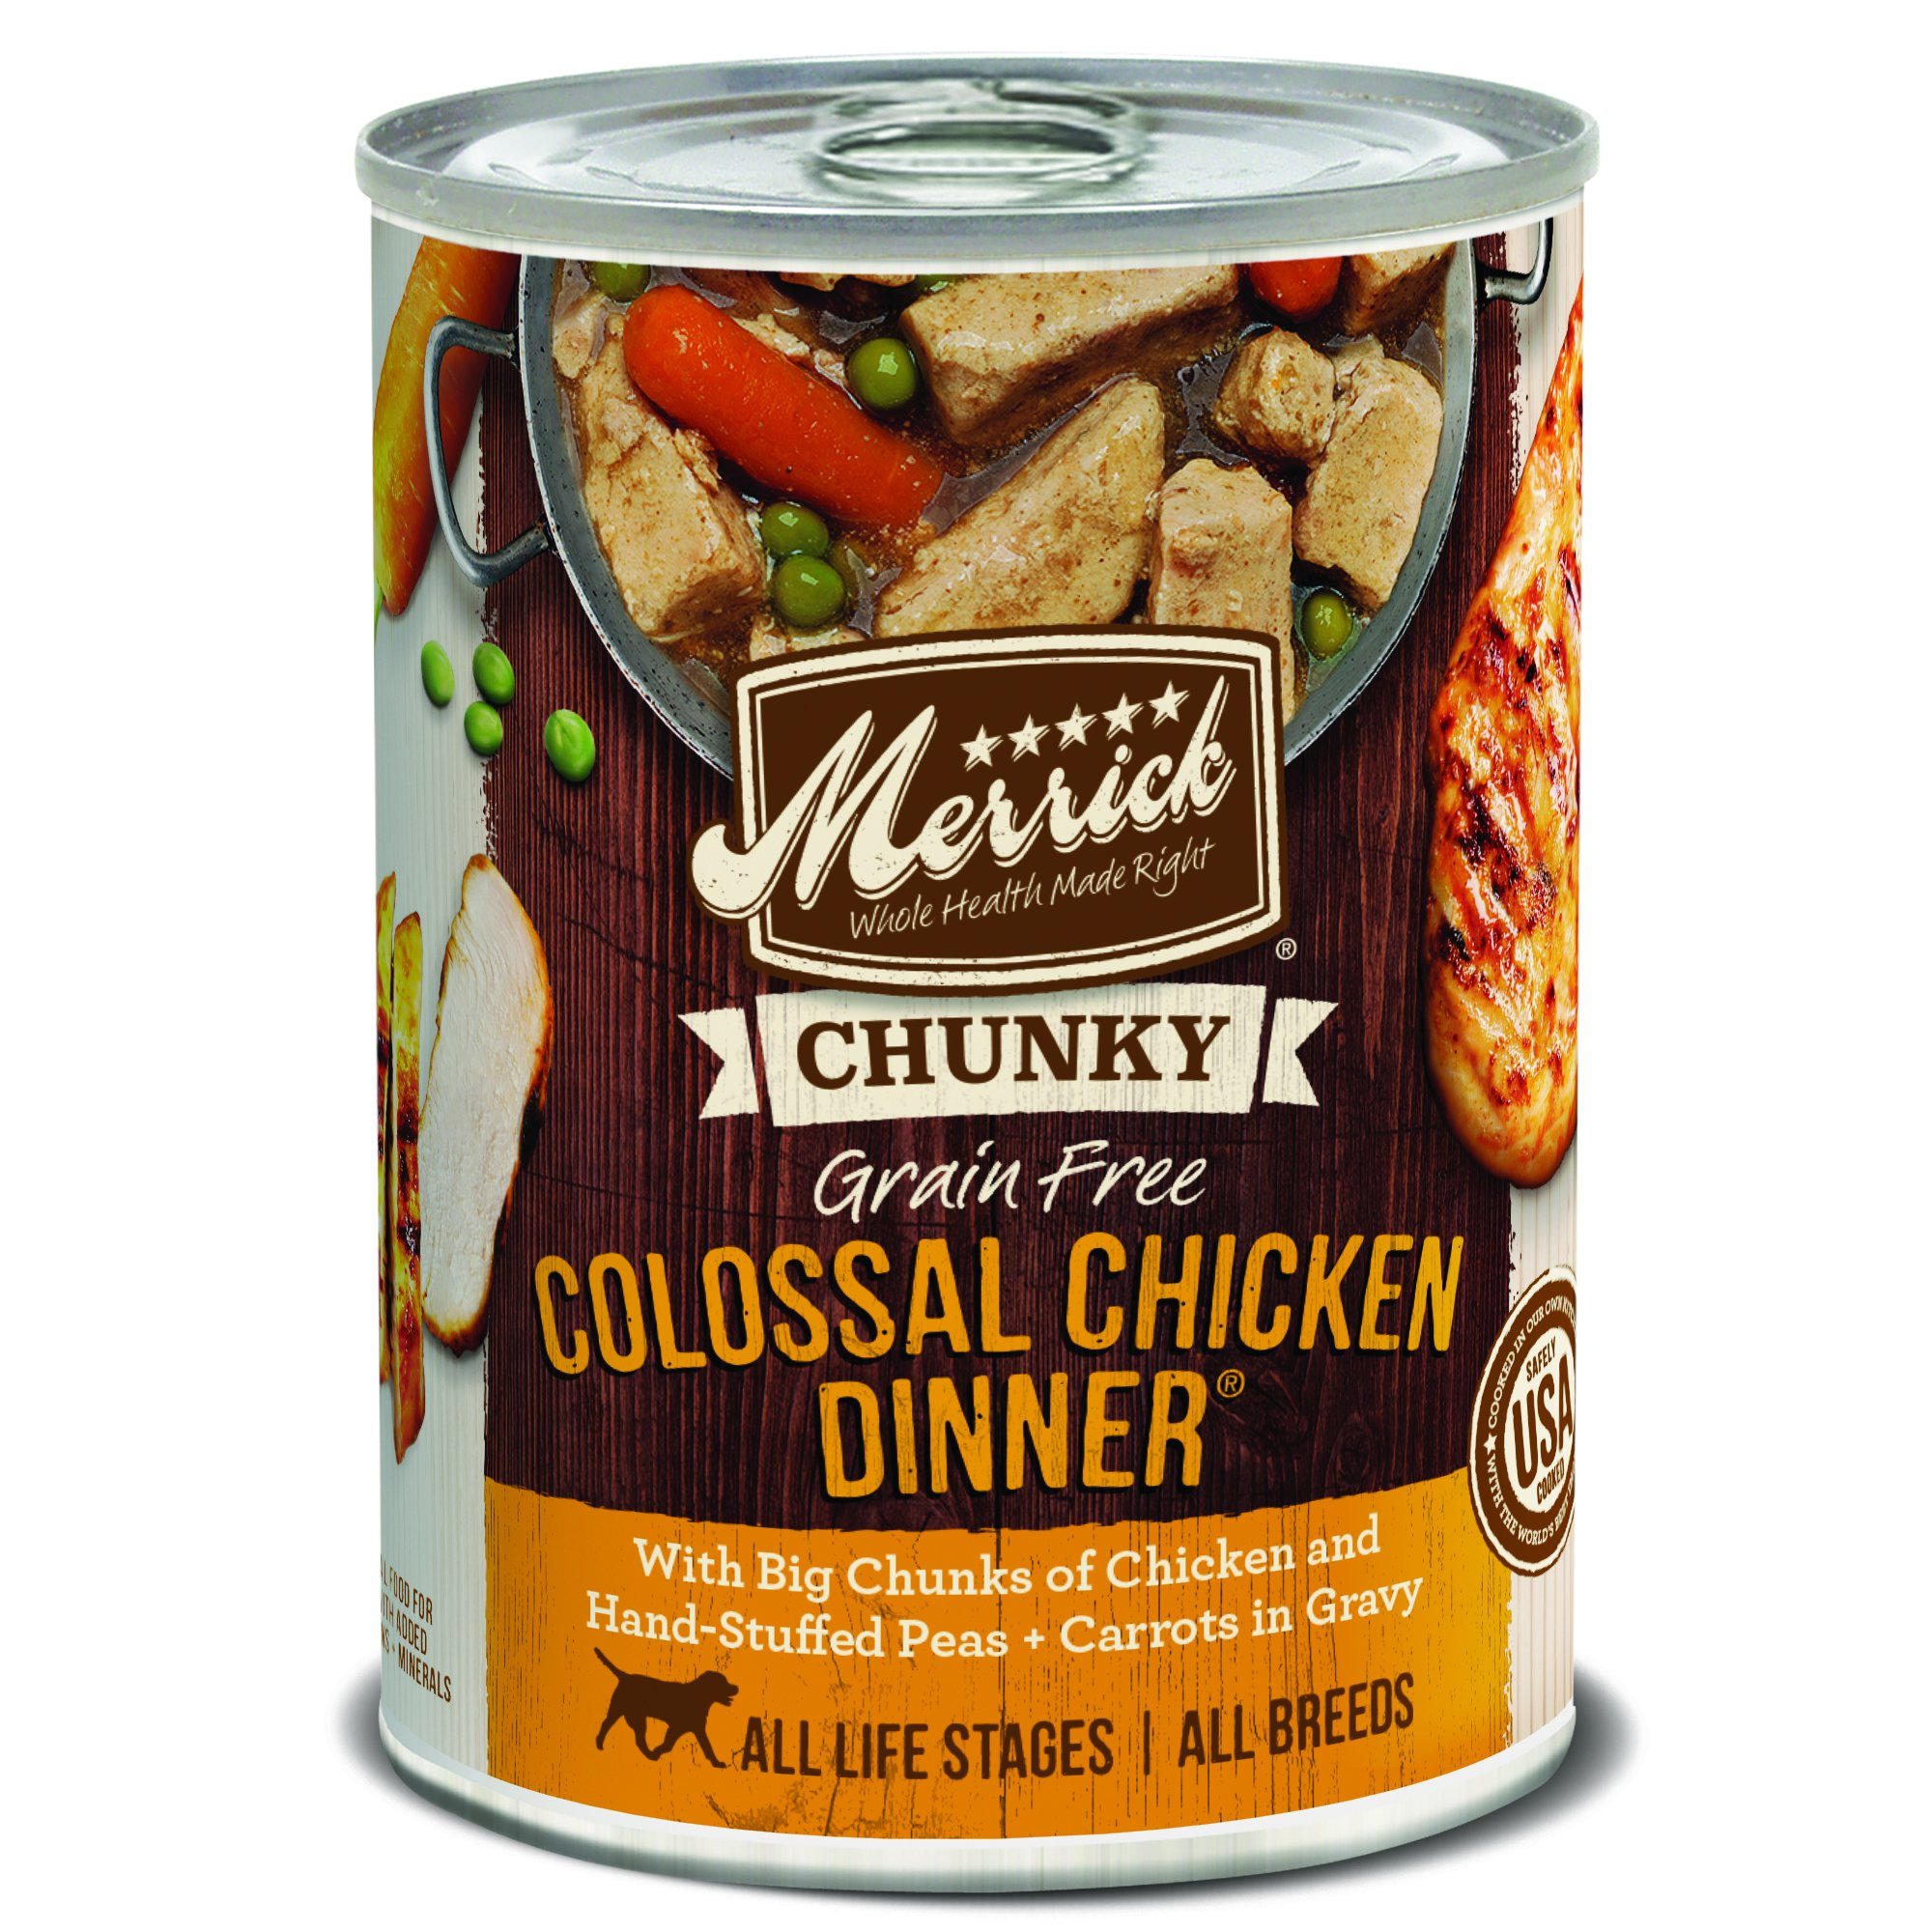 Merrick 12 Count Chunky Colossal Chicken Dinner by Merrick